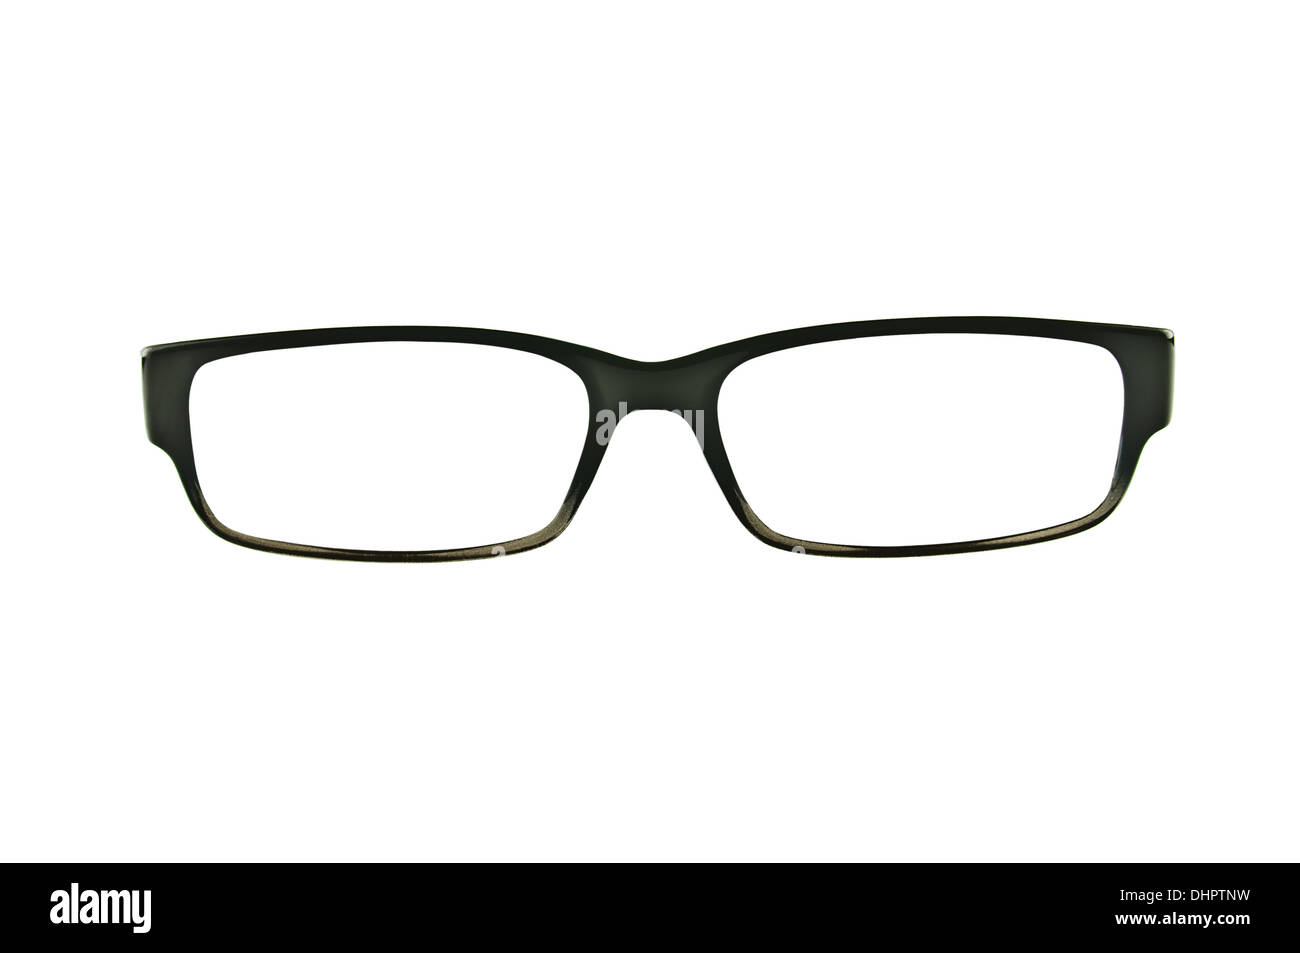 Black eyeglasses frames isolated on pure white - Stock Image